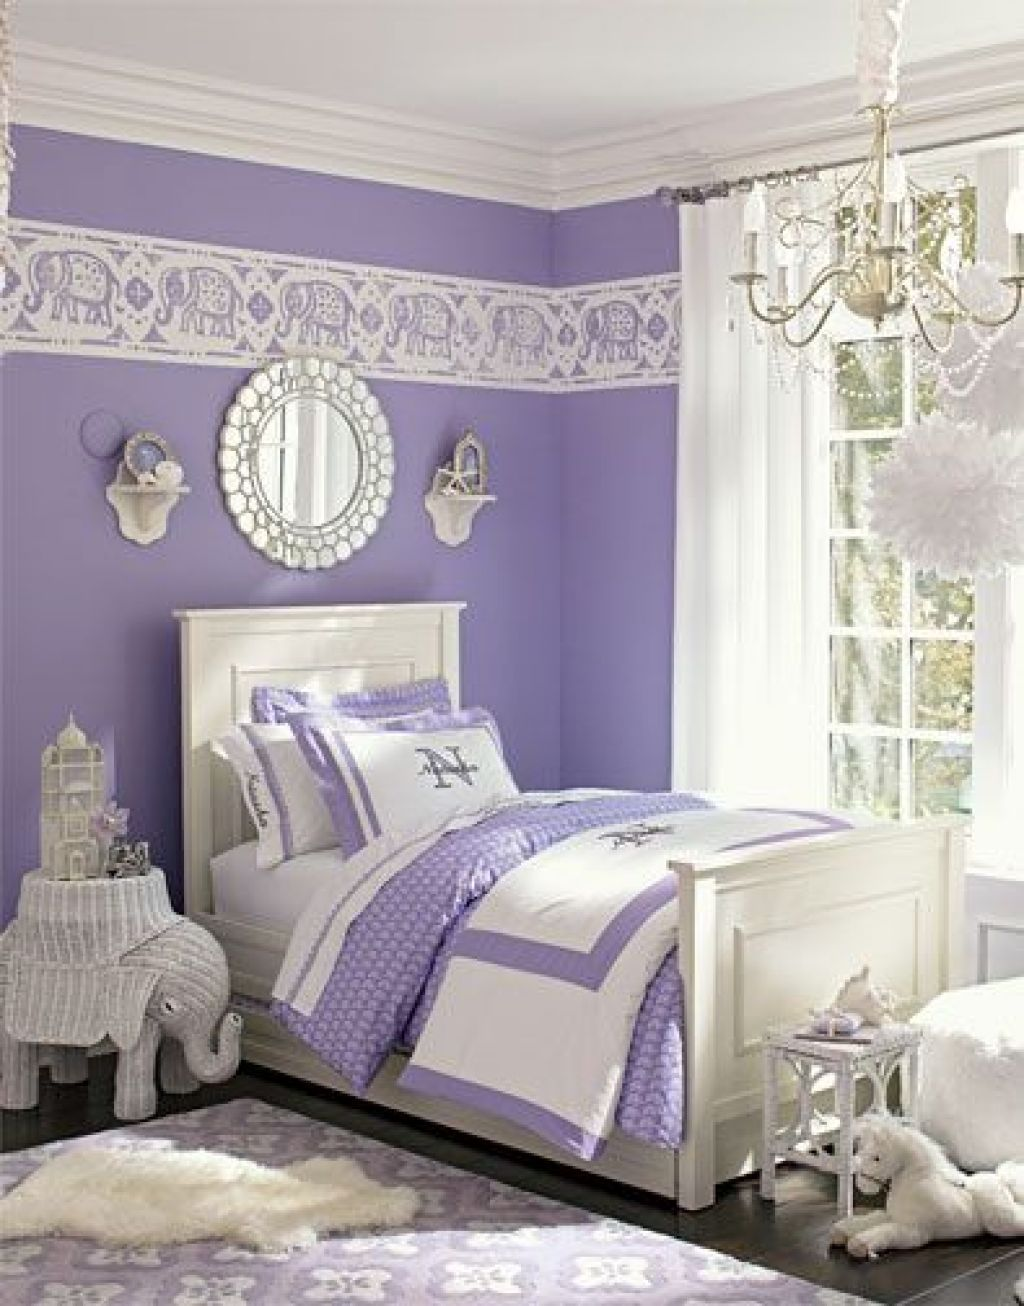 Bedroom girl purple bedroom ideas teenage girl bedroom ideas with purple color wall and - Purple room for girls ...